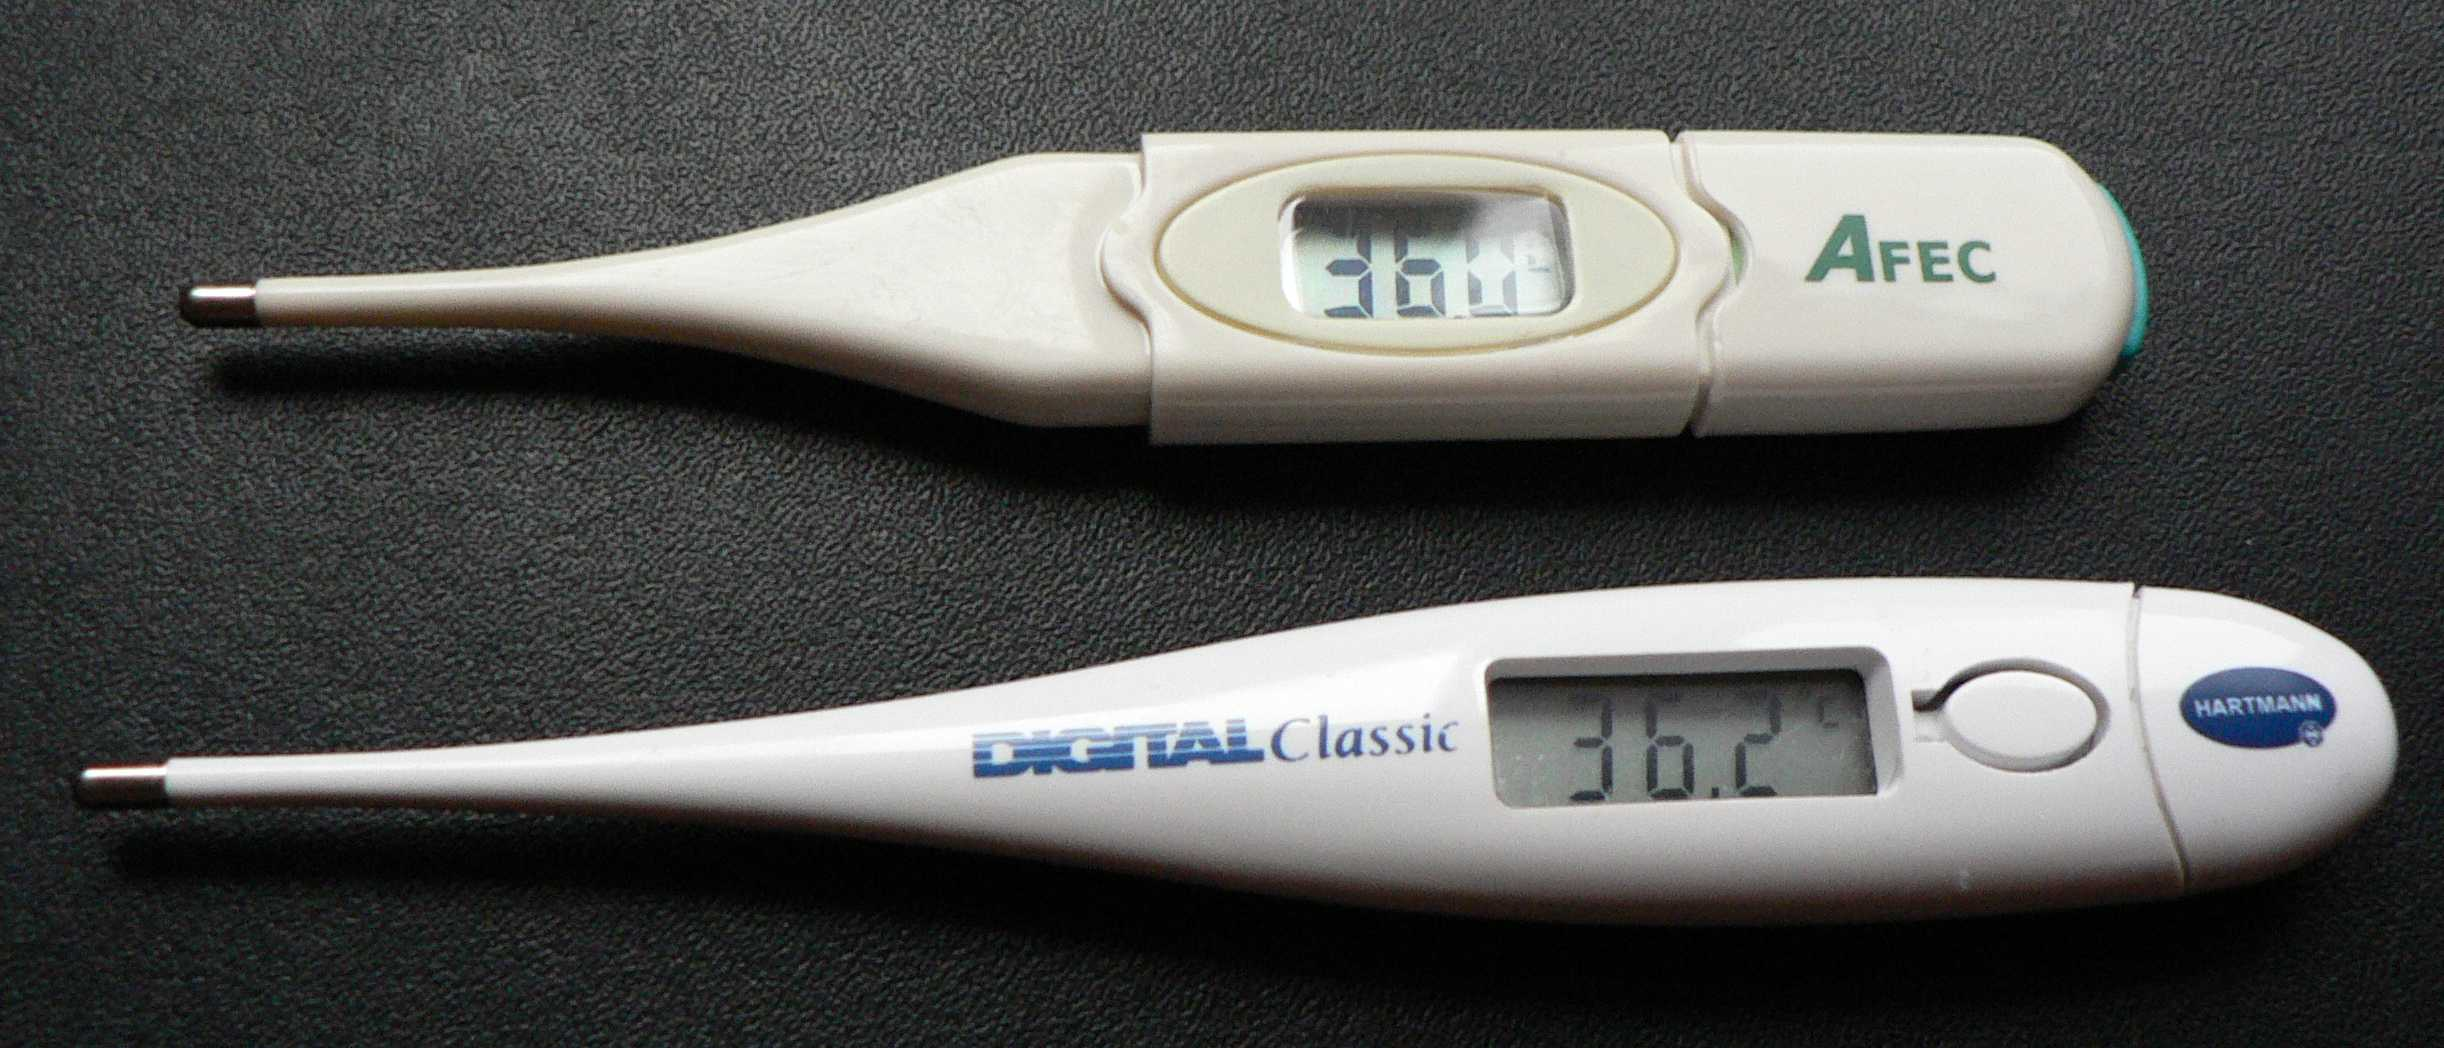 Thermometer in the butt fetish